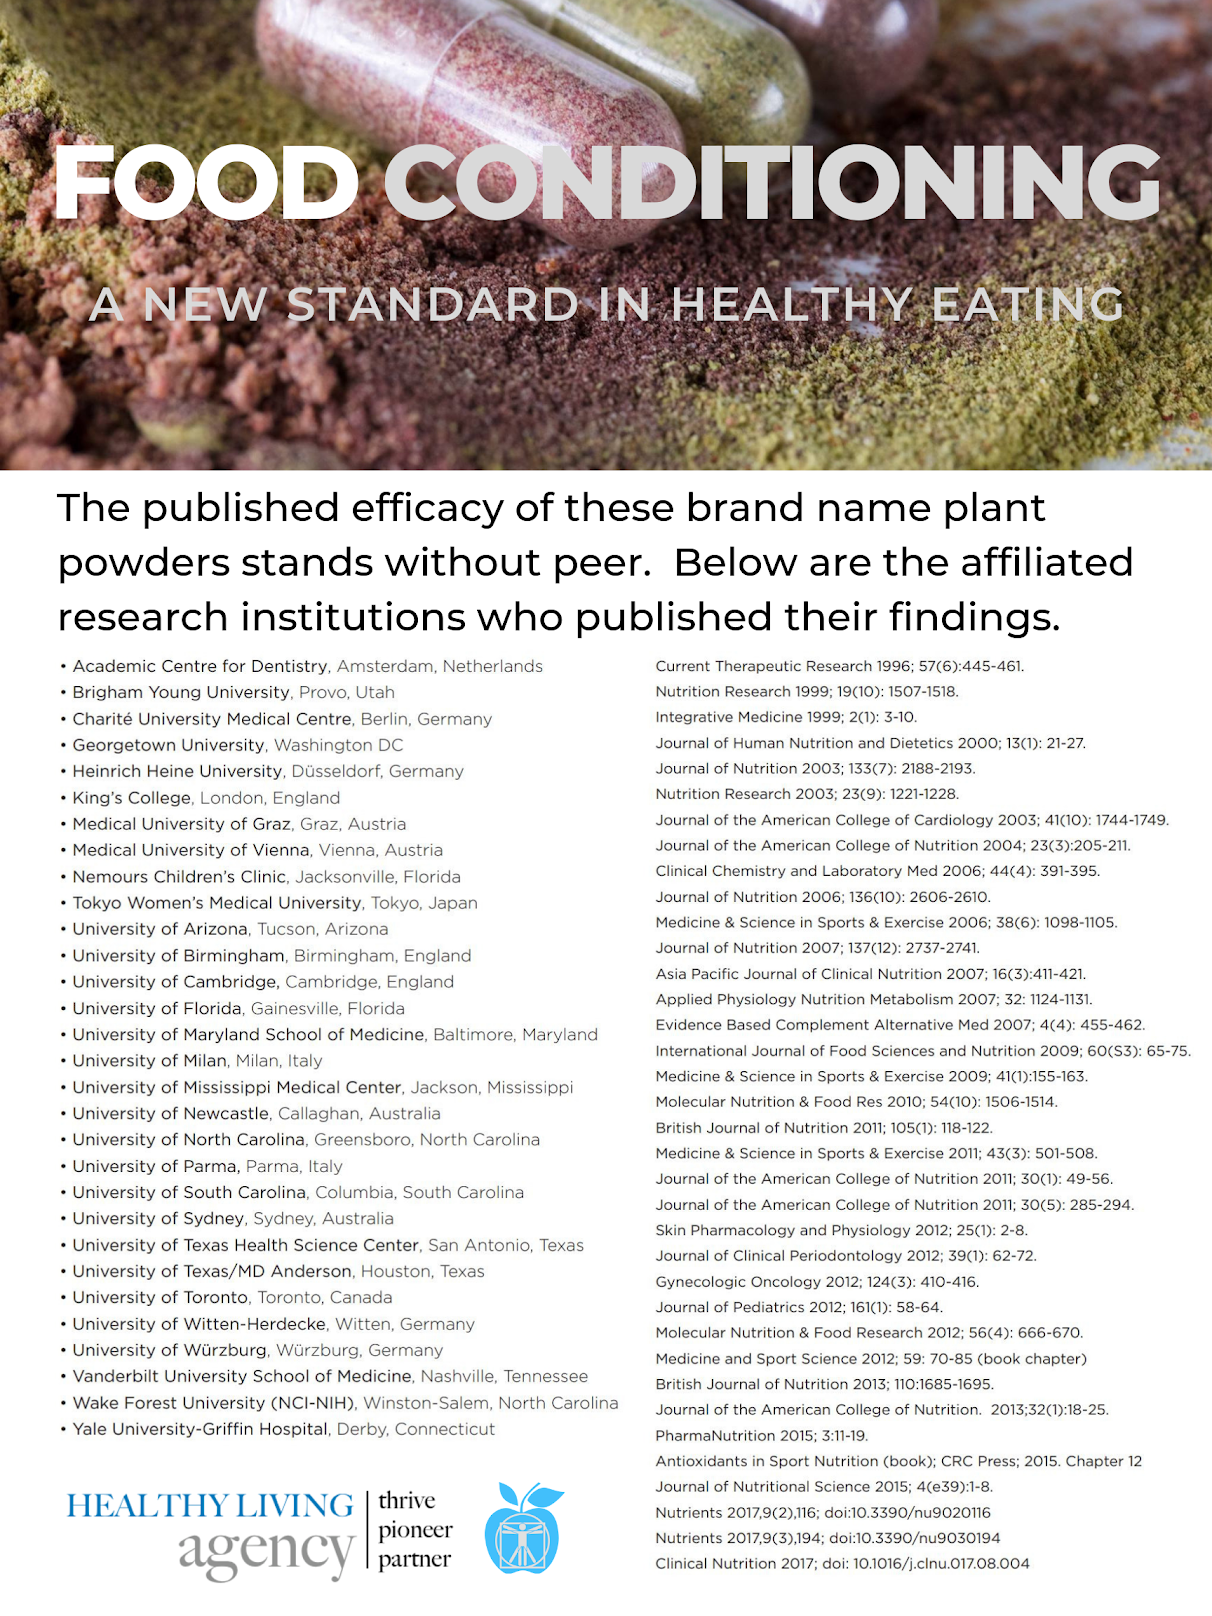 published efficacy plant powders.png